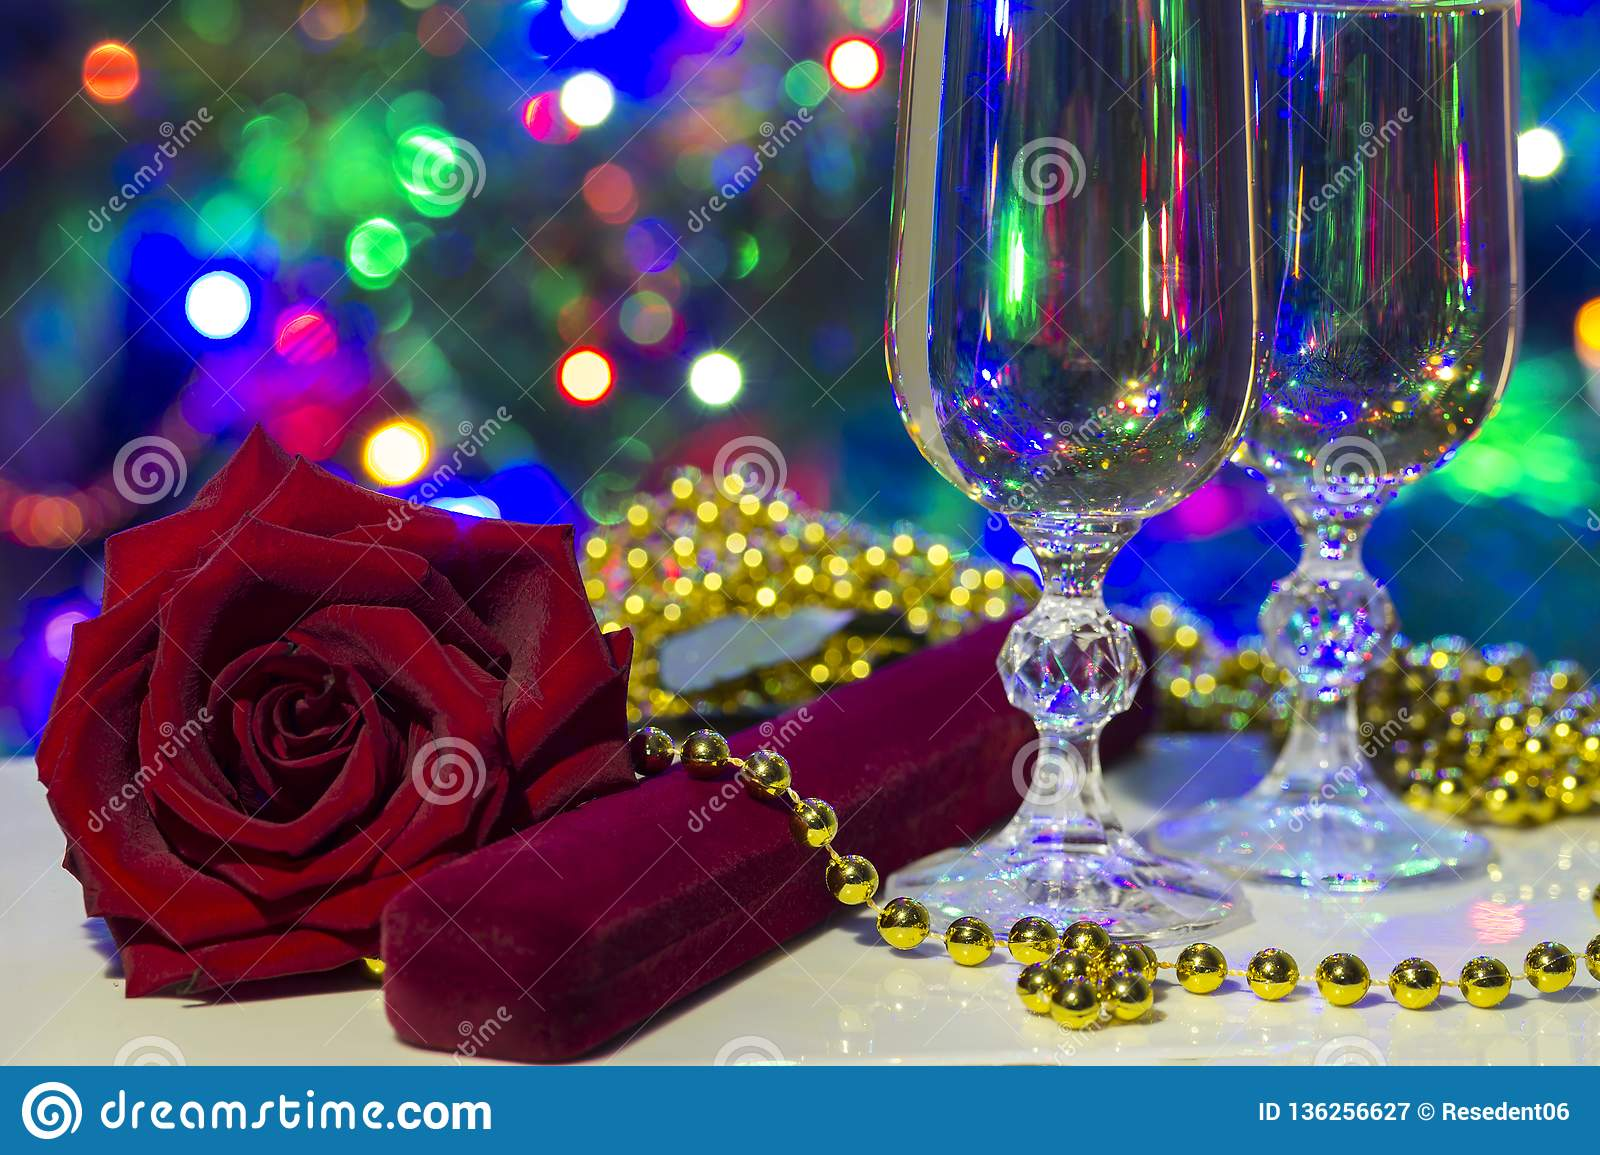 holiday congratulatory photo with cristal glasses and lights